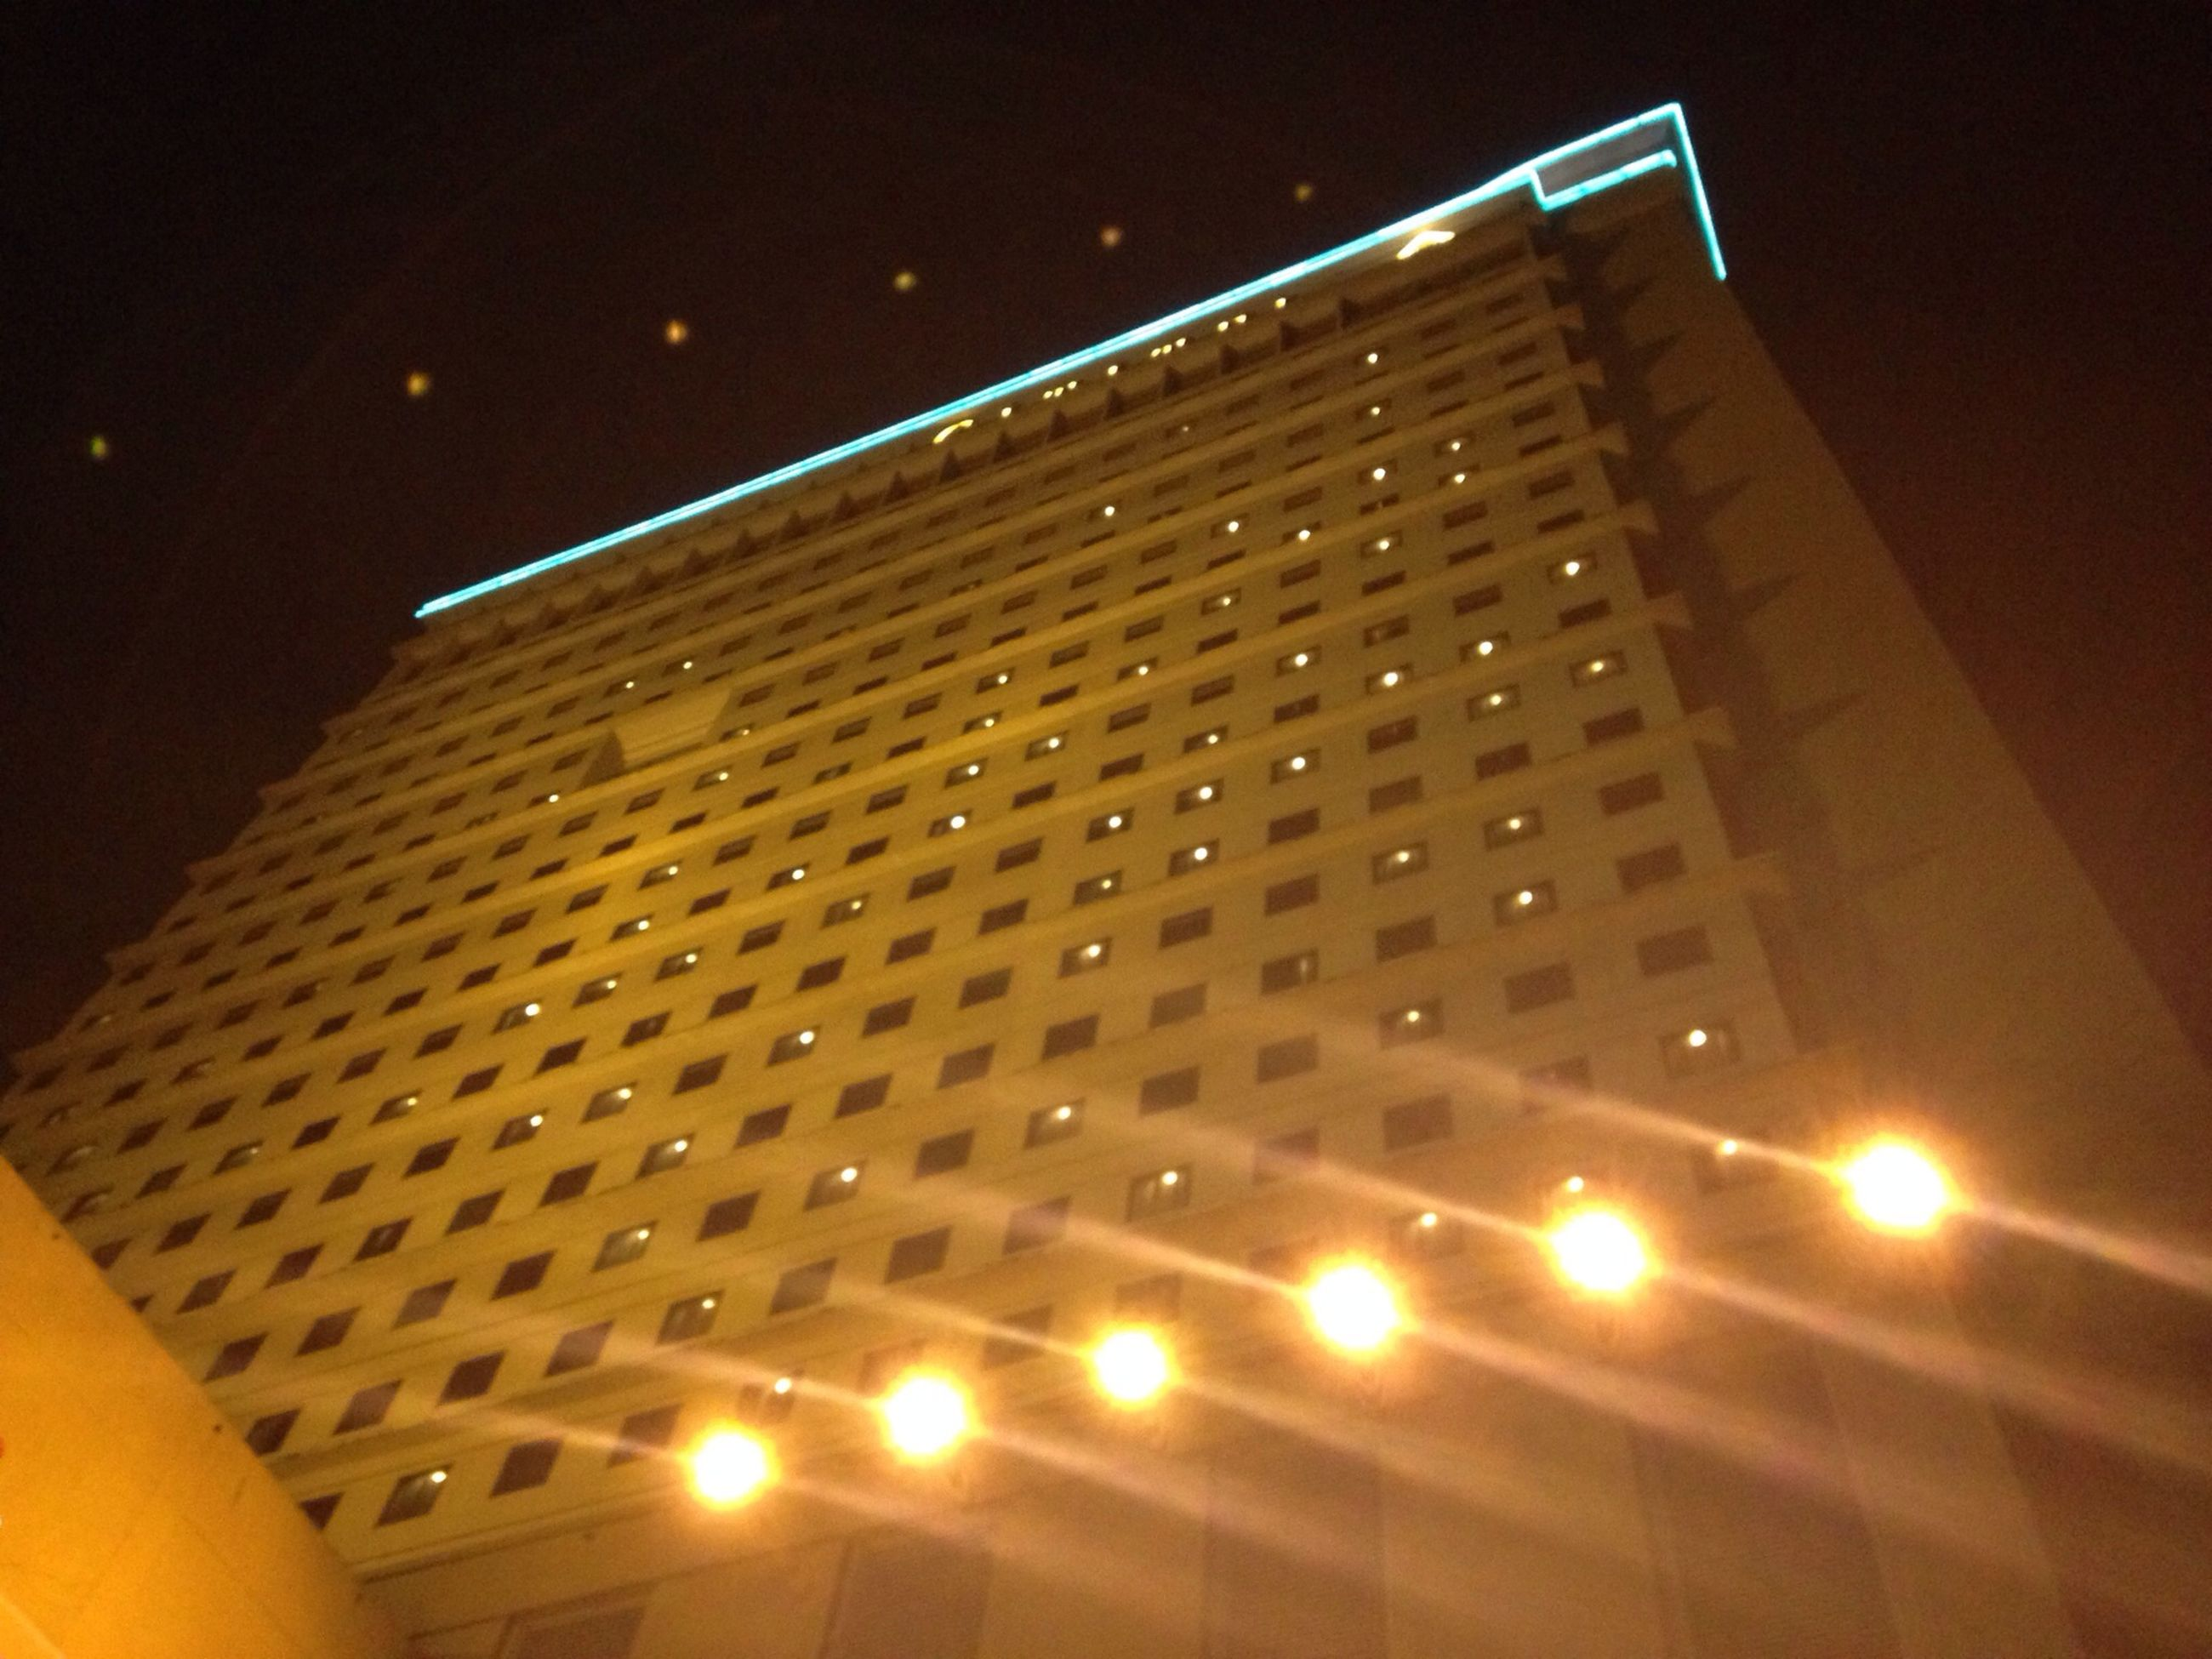 low angle view, illuminated, architecture, built structure, night, building exterior, modern, pattern, lighting equipment, indoors, building, no people, sky, light - natural phenomenon, glowing, city, tall - high, sunlight, skyscraper